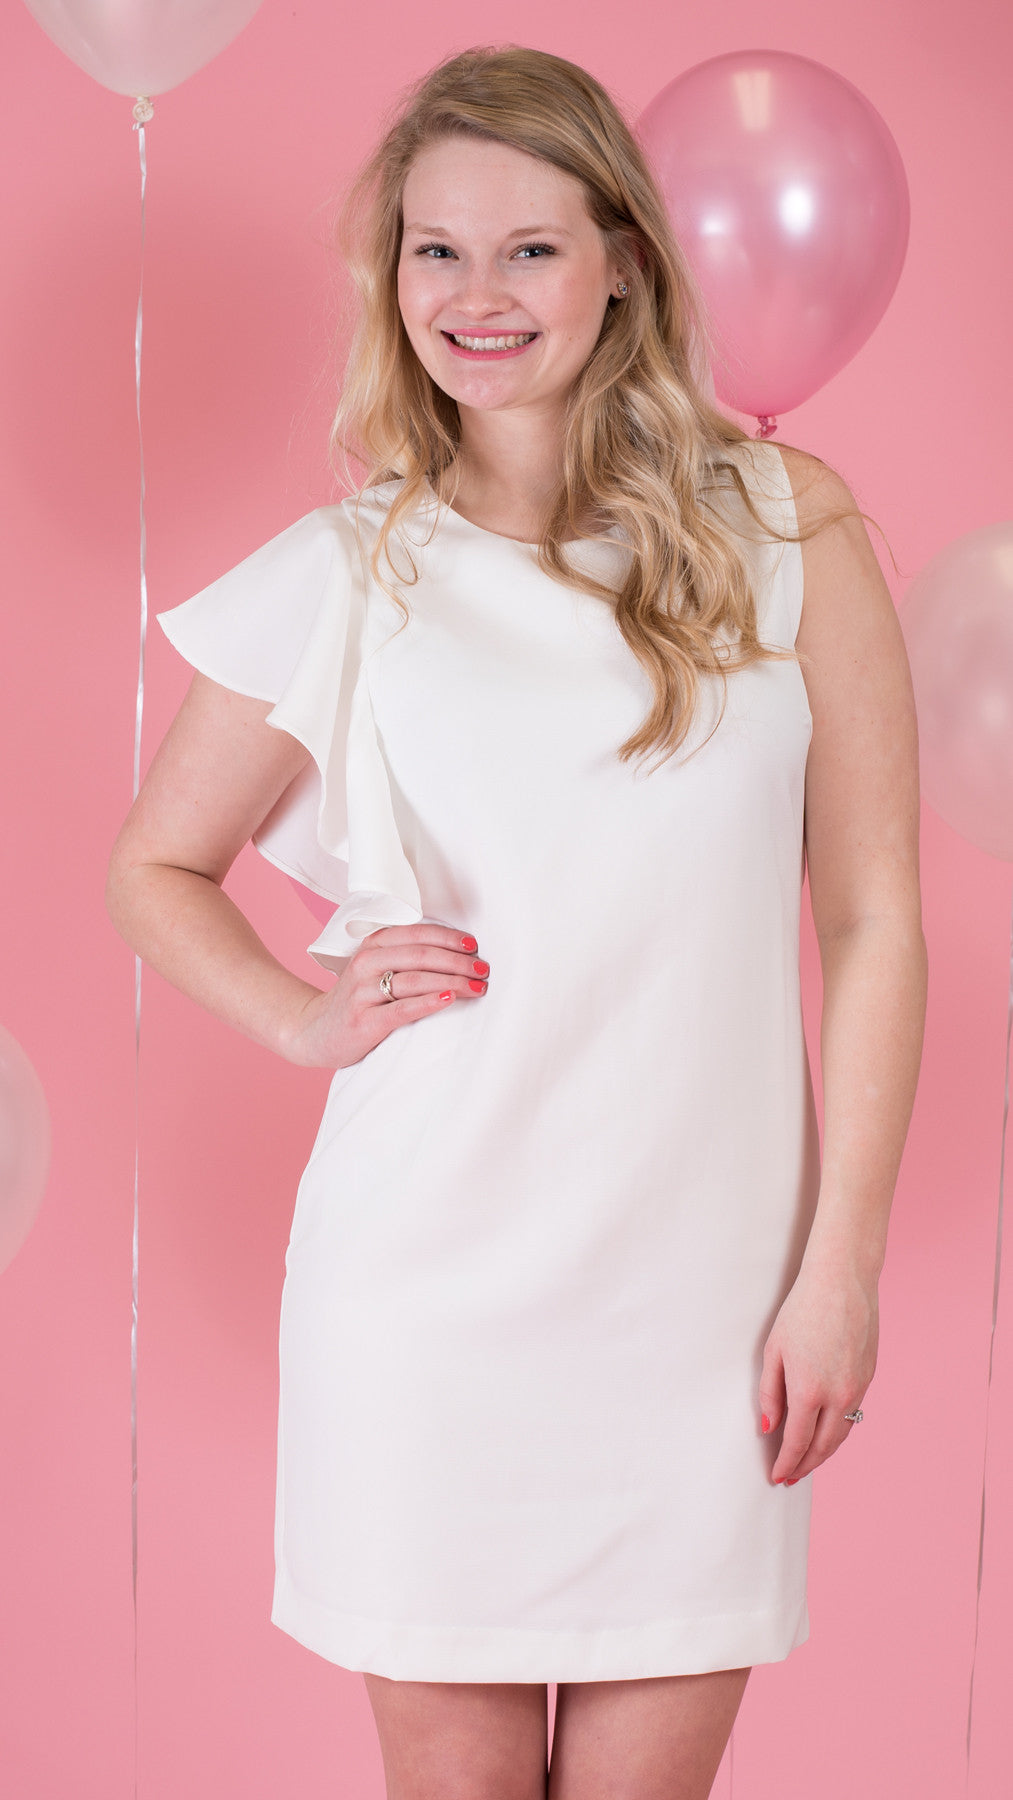 White sleeveless sheath dress with ruffle on one arm